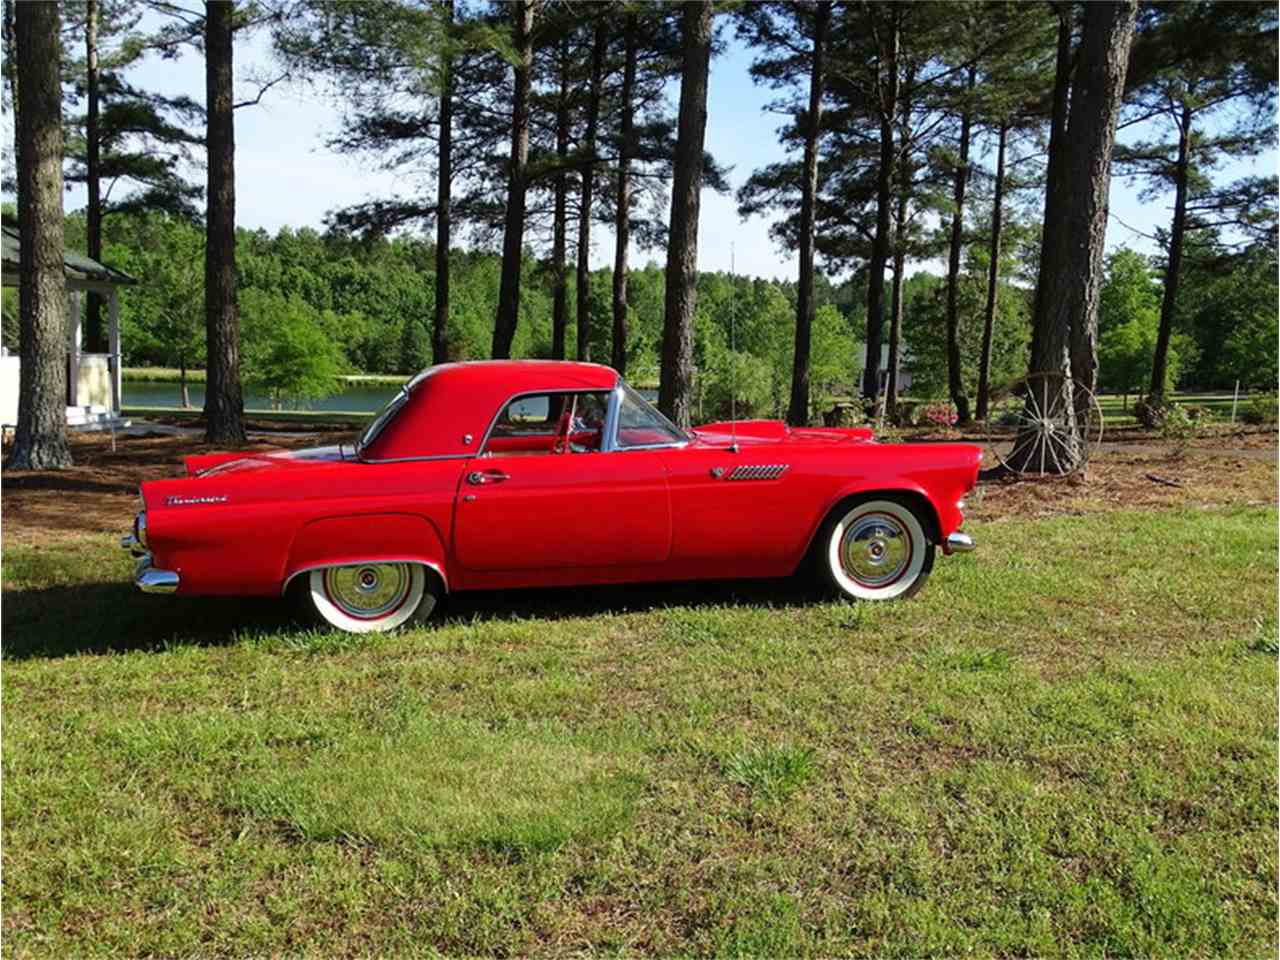 Large Picture of 1955 Ford Thunderbird Auction Vehicle Offered by GAA Classic Cars Auctions - NMA5